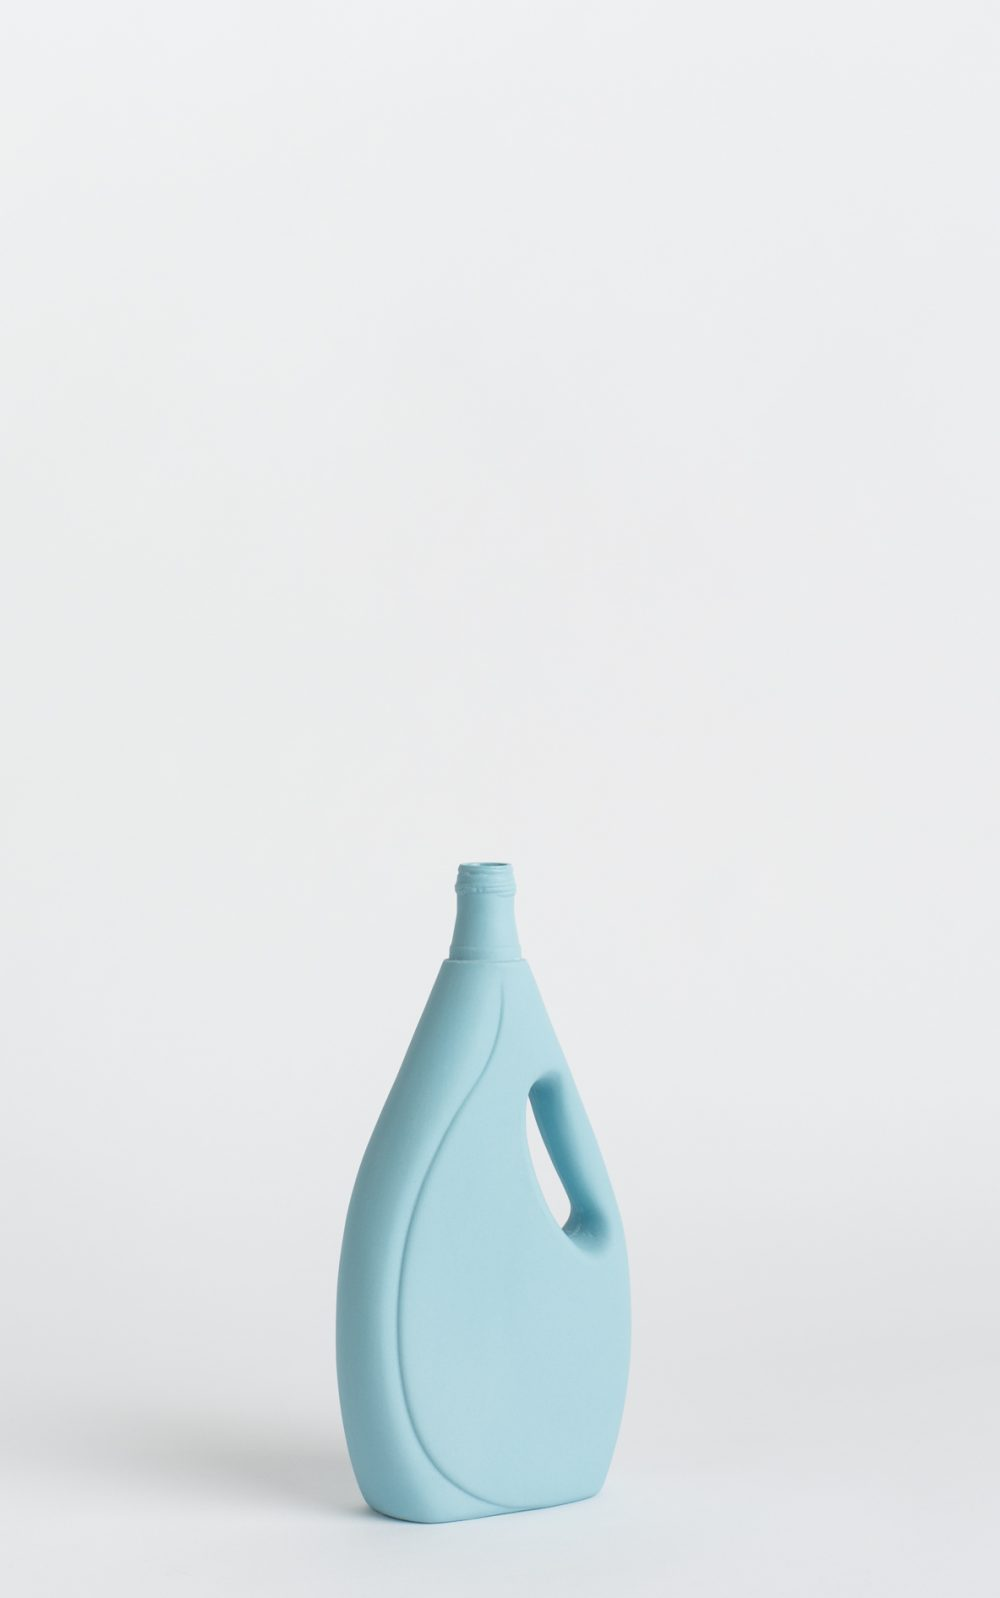 bottle vase #7 light blue